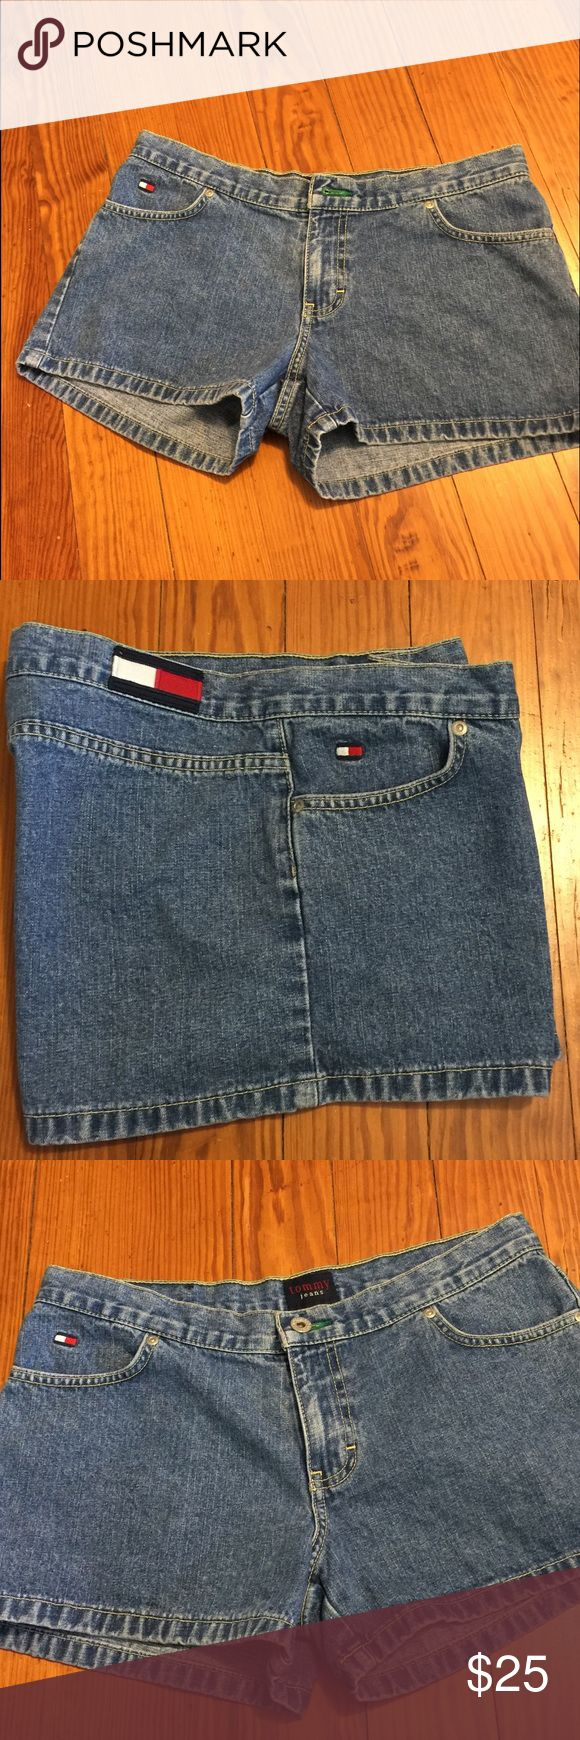 Tommy Hilfiger  jeans shorts Tommy jeans denim shorts excellent excellent used condition size 9 no back pockets  (Shop and feel good about it 😁. Part of the money u spend goes to Purple Heart Foundation 💜) Tommy Hilfiger Shorts Jean Shorts